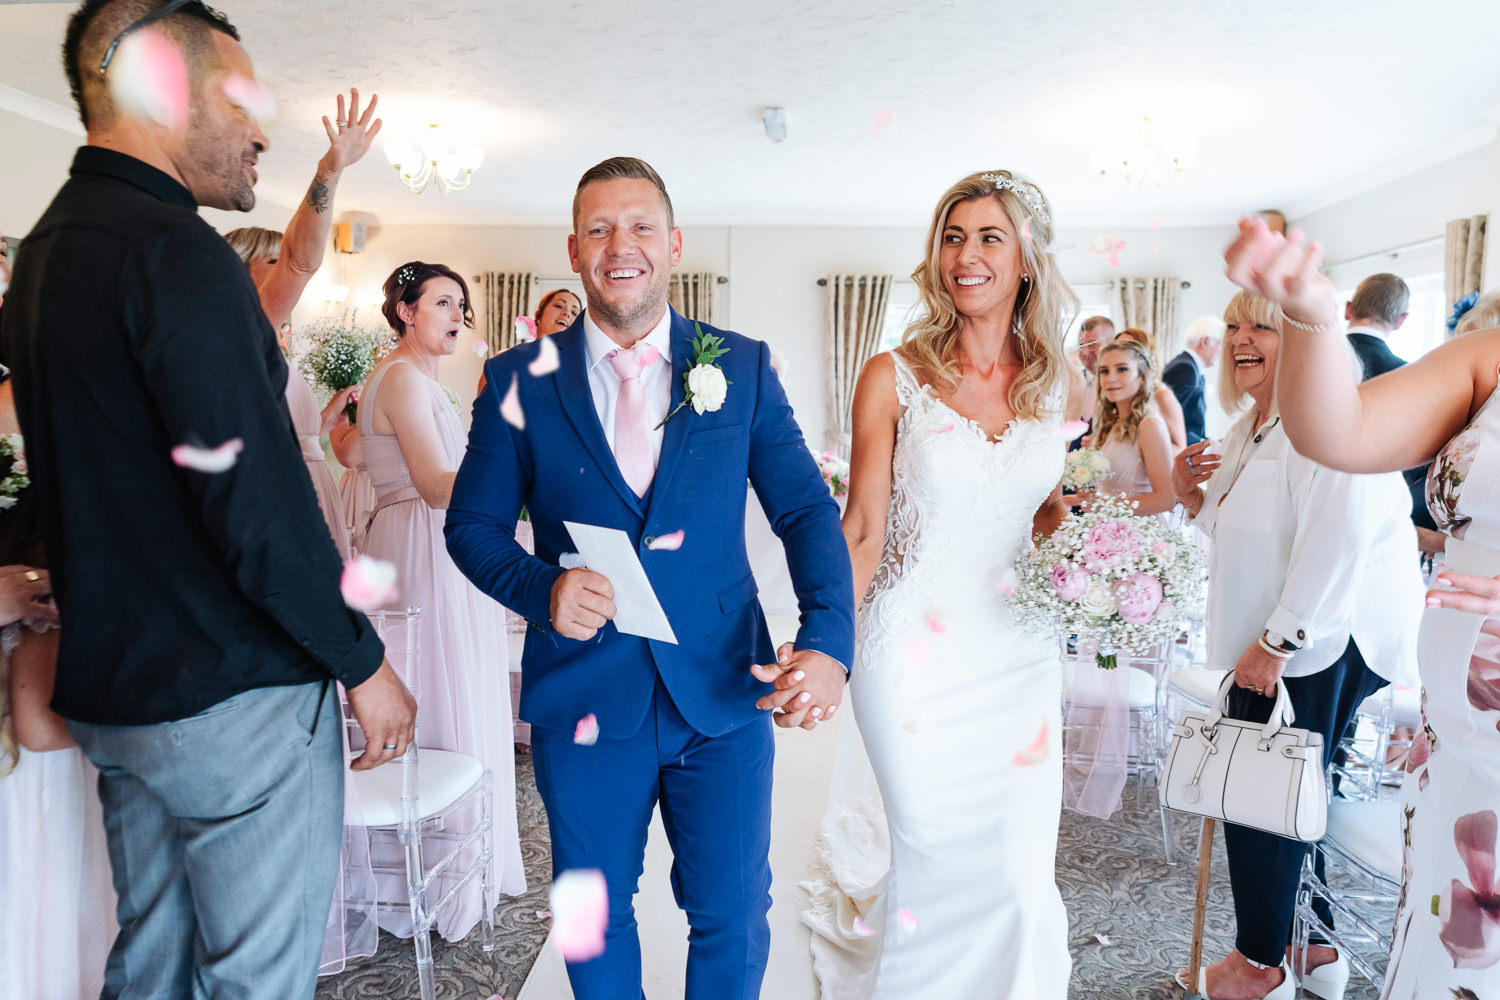 wensum valley wedding, candid, wedding photography, norwich, norfolk